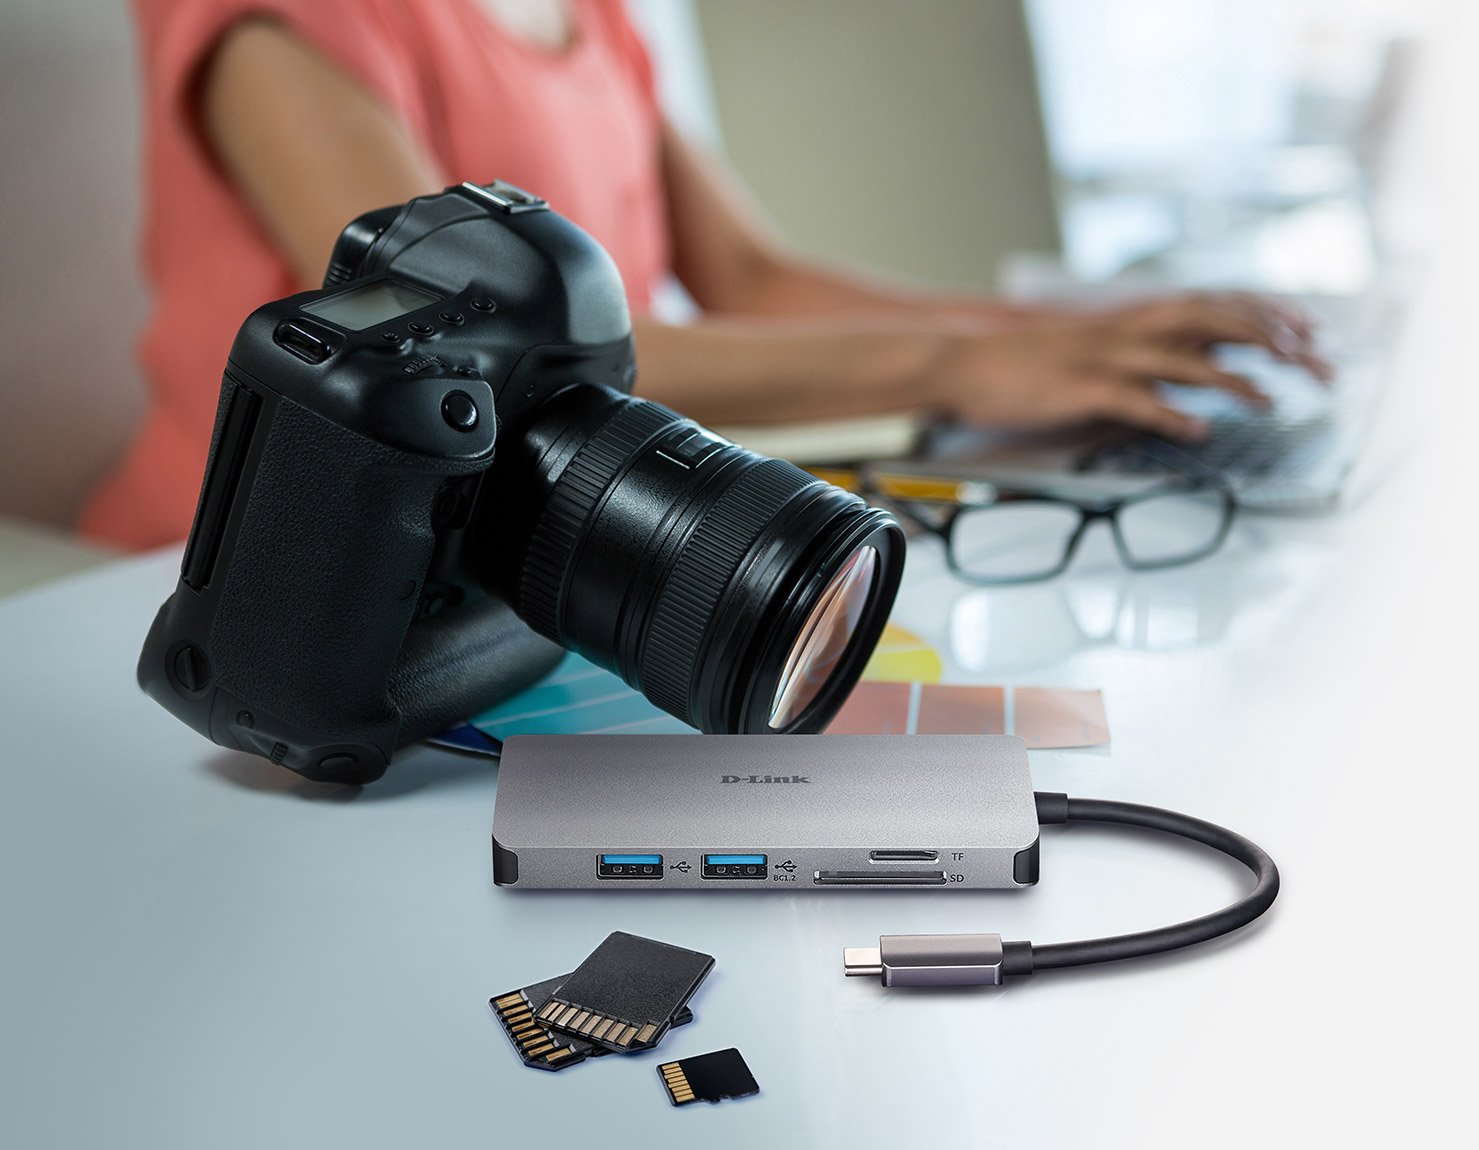 6-in-1 USB-C Hub with HDMI/Card Reader/Power Delivery next a camera and SD cards and microSD cards